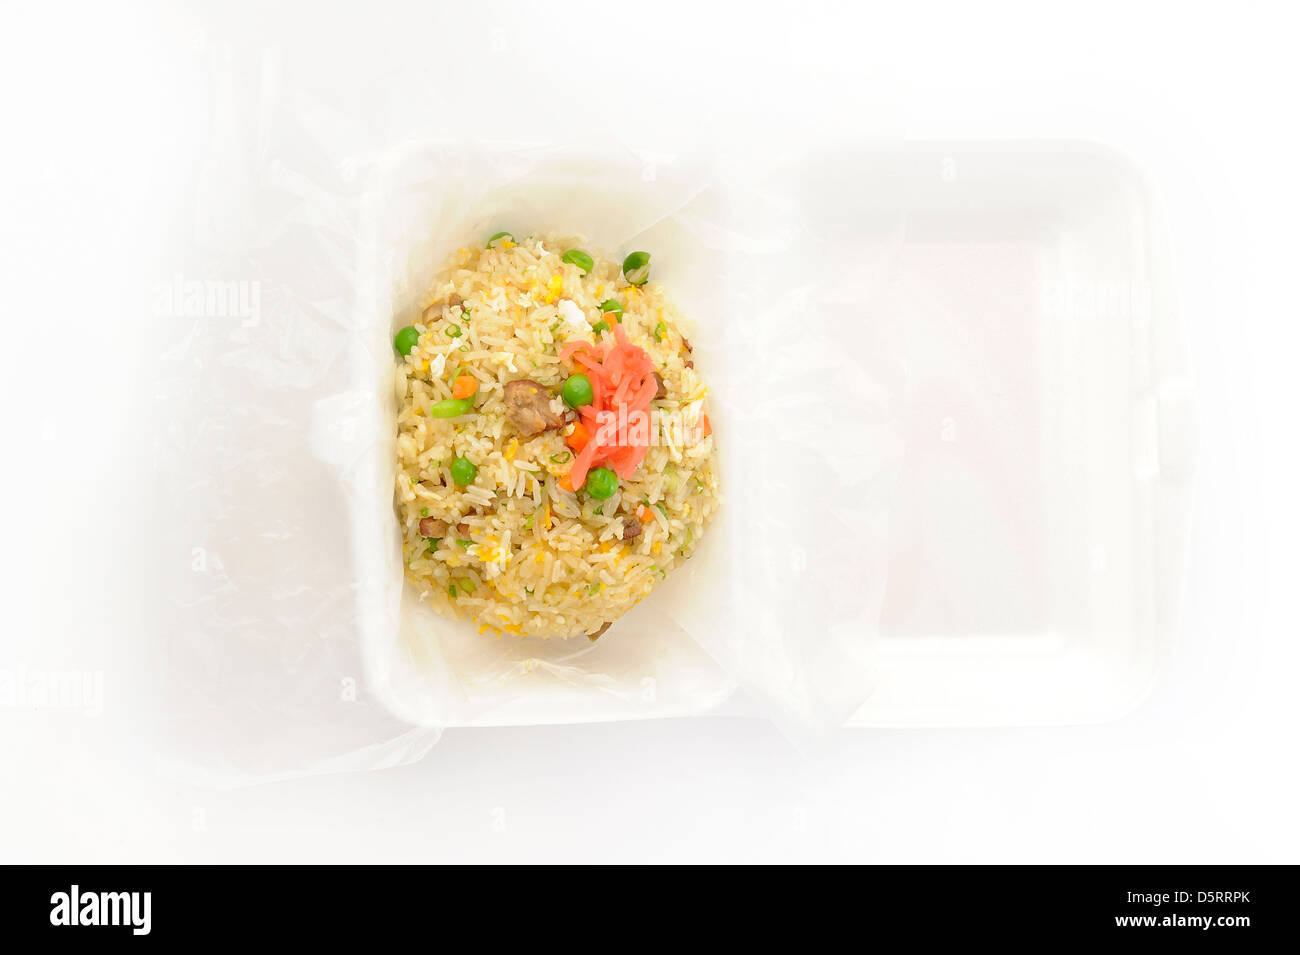 Pork fried rice with peas in foam box - Stock Image